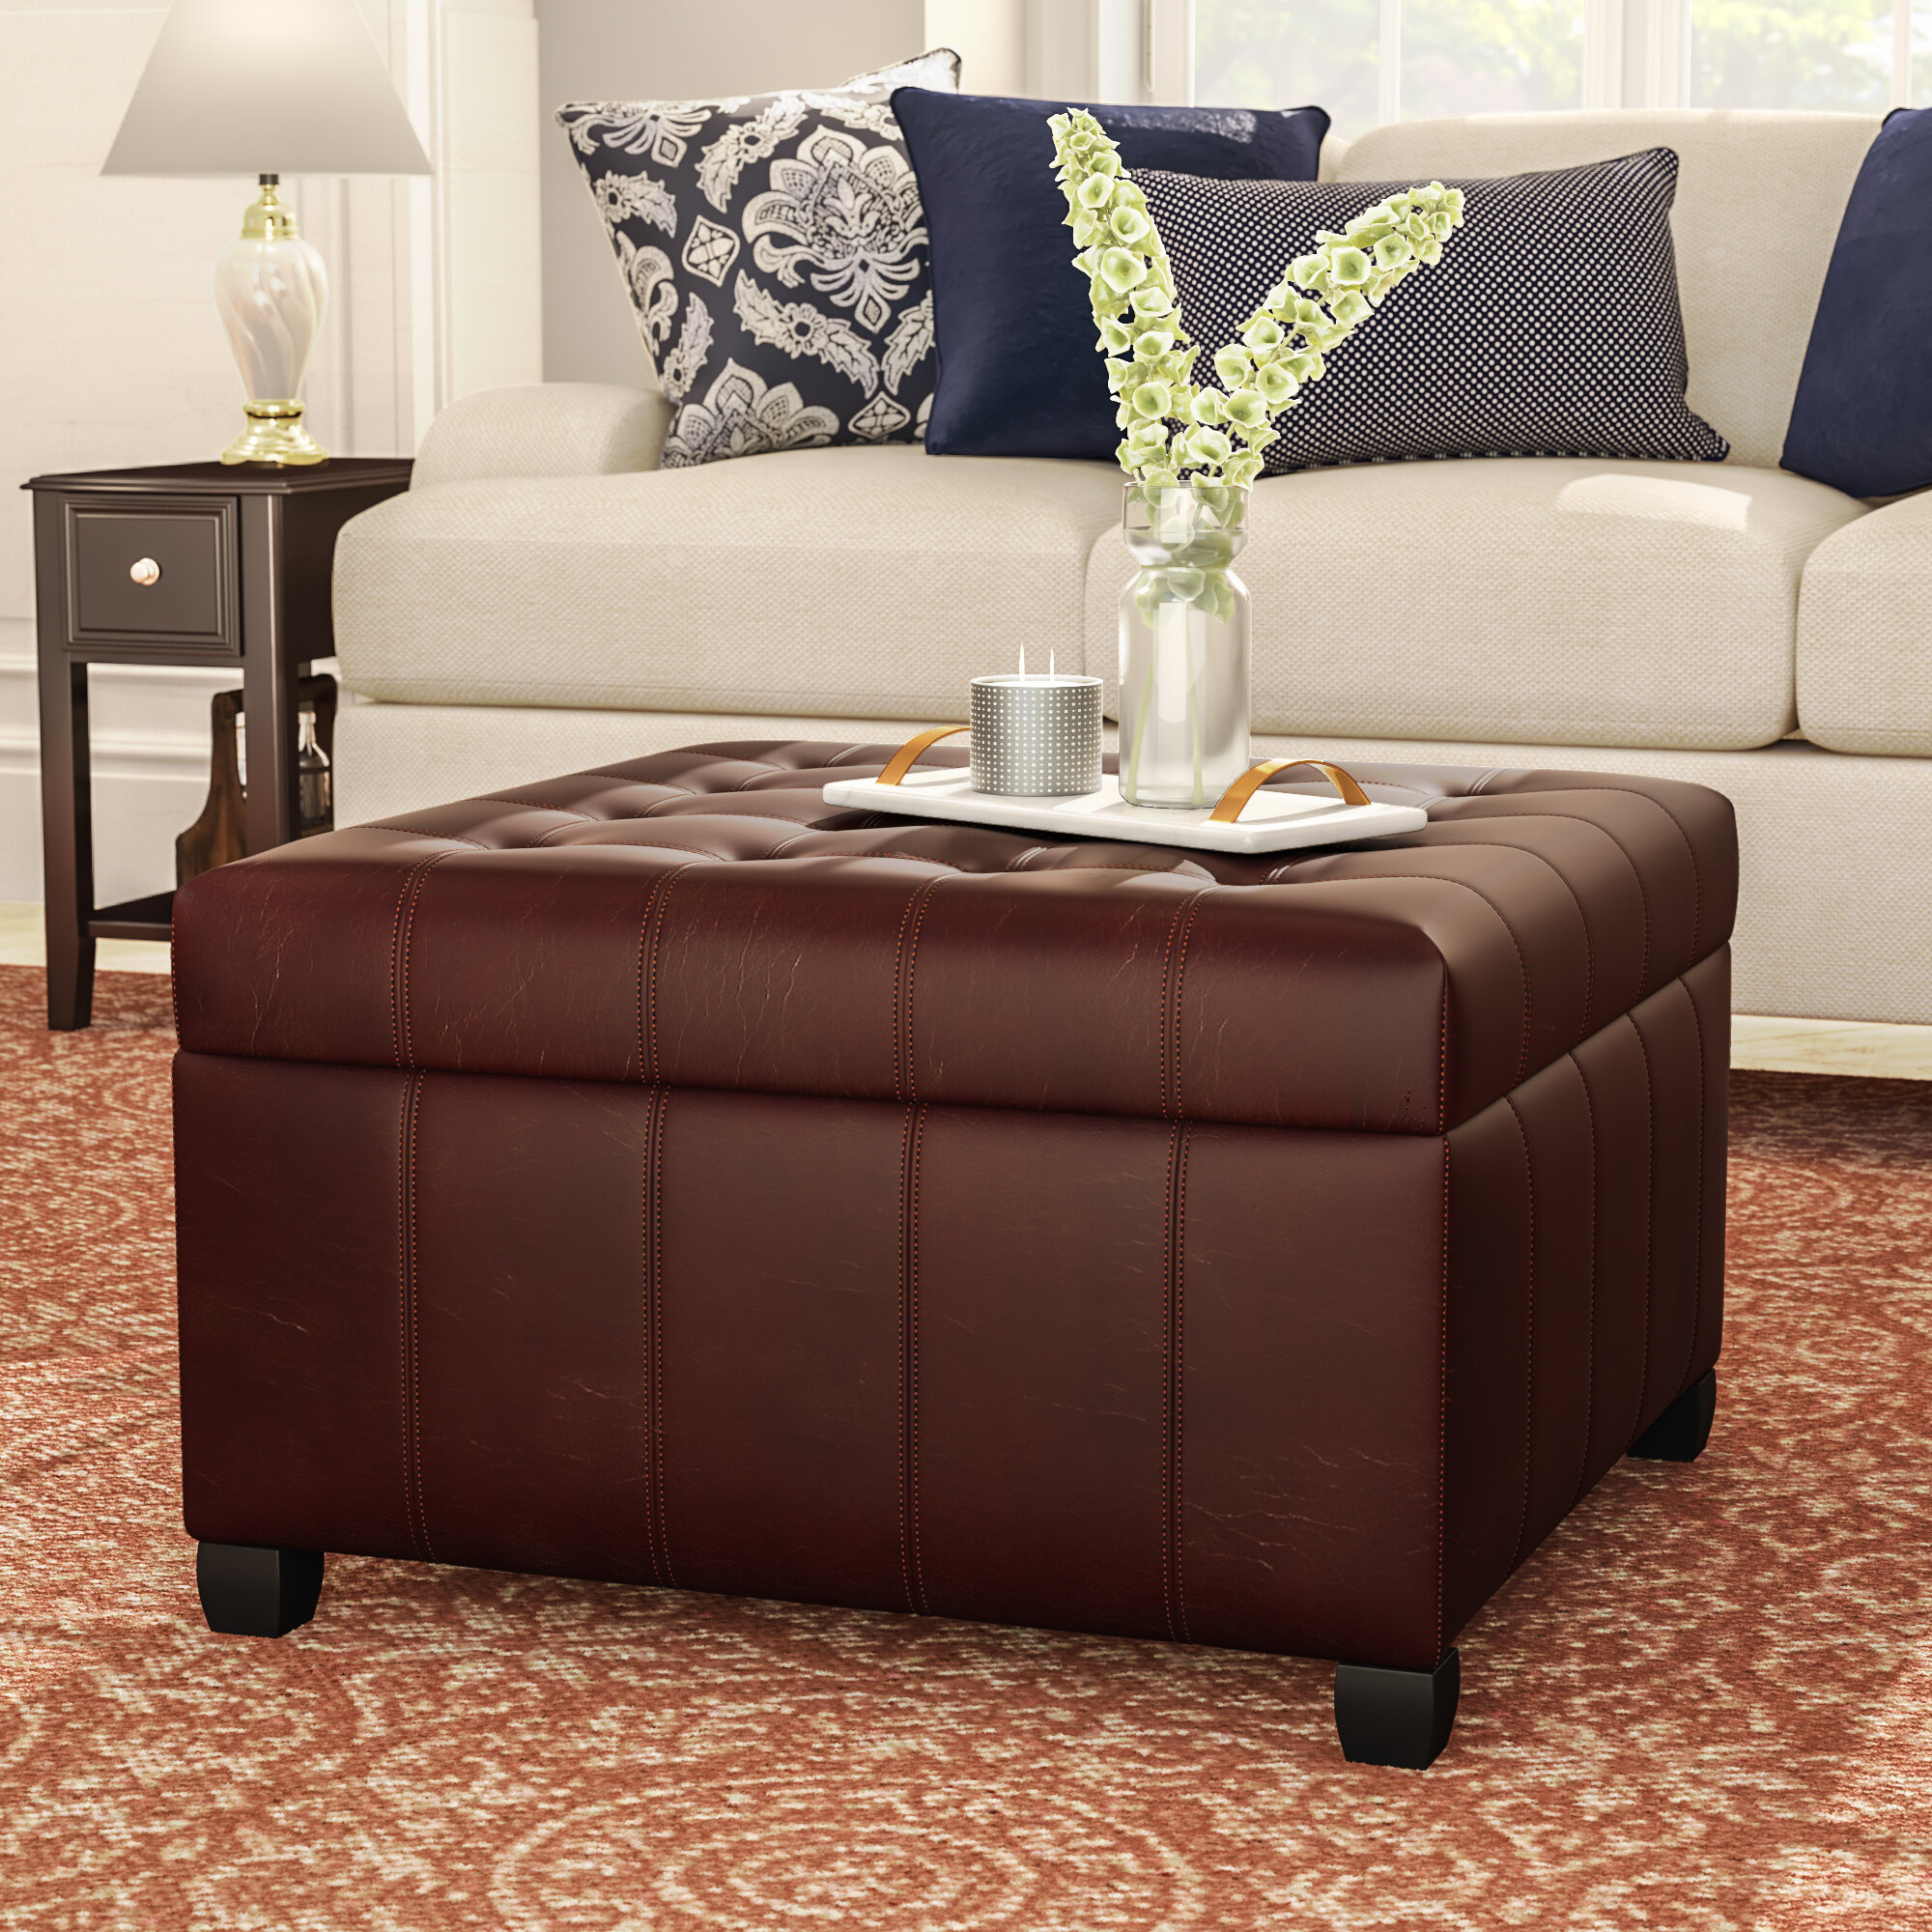 Merveilleux Francisville Leather Storage Ottoman